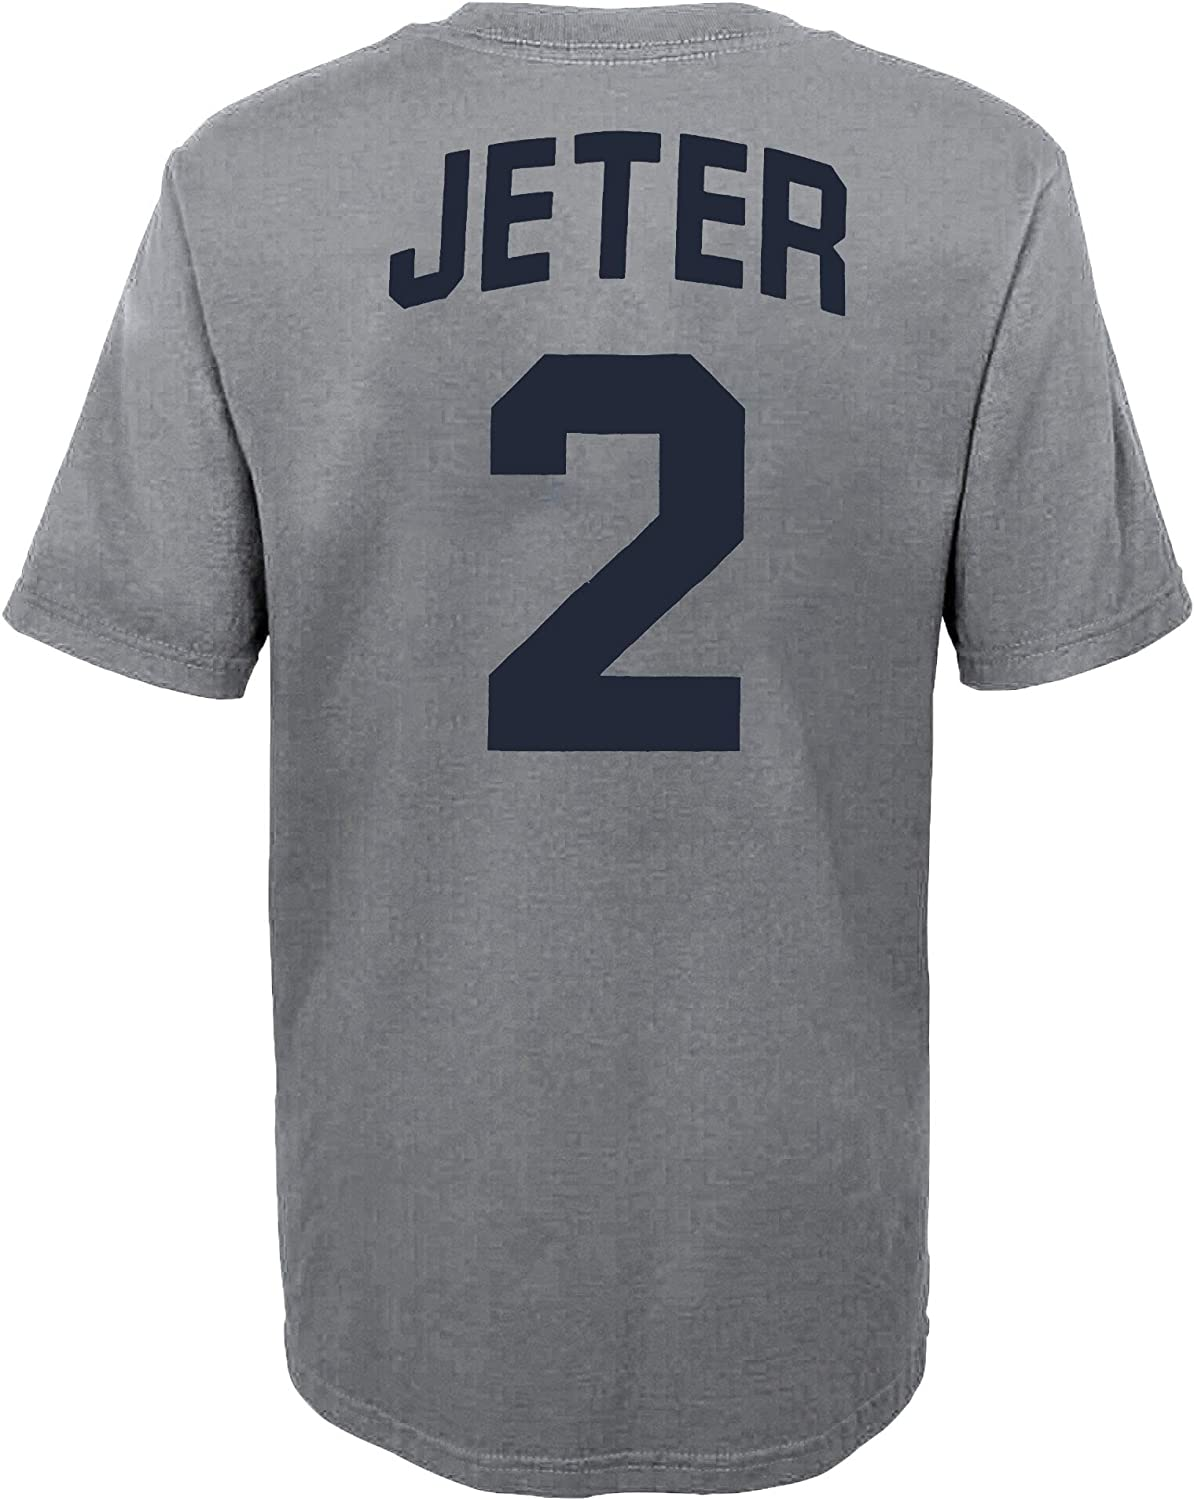 Outerstuff MLB Youth 8-20 Team Color Alternate Primary Logo Name and Number Player T-Shirt